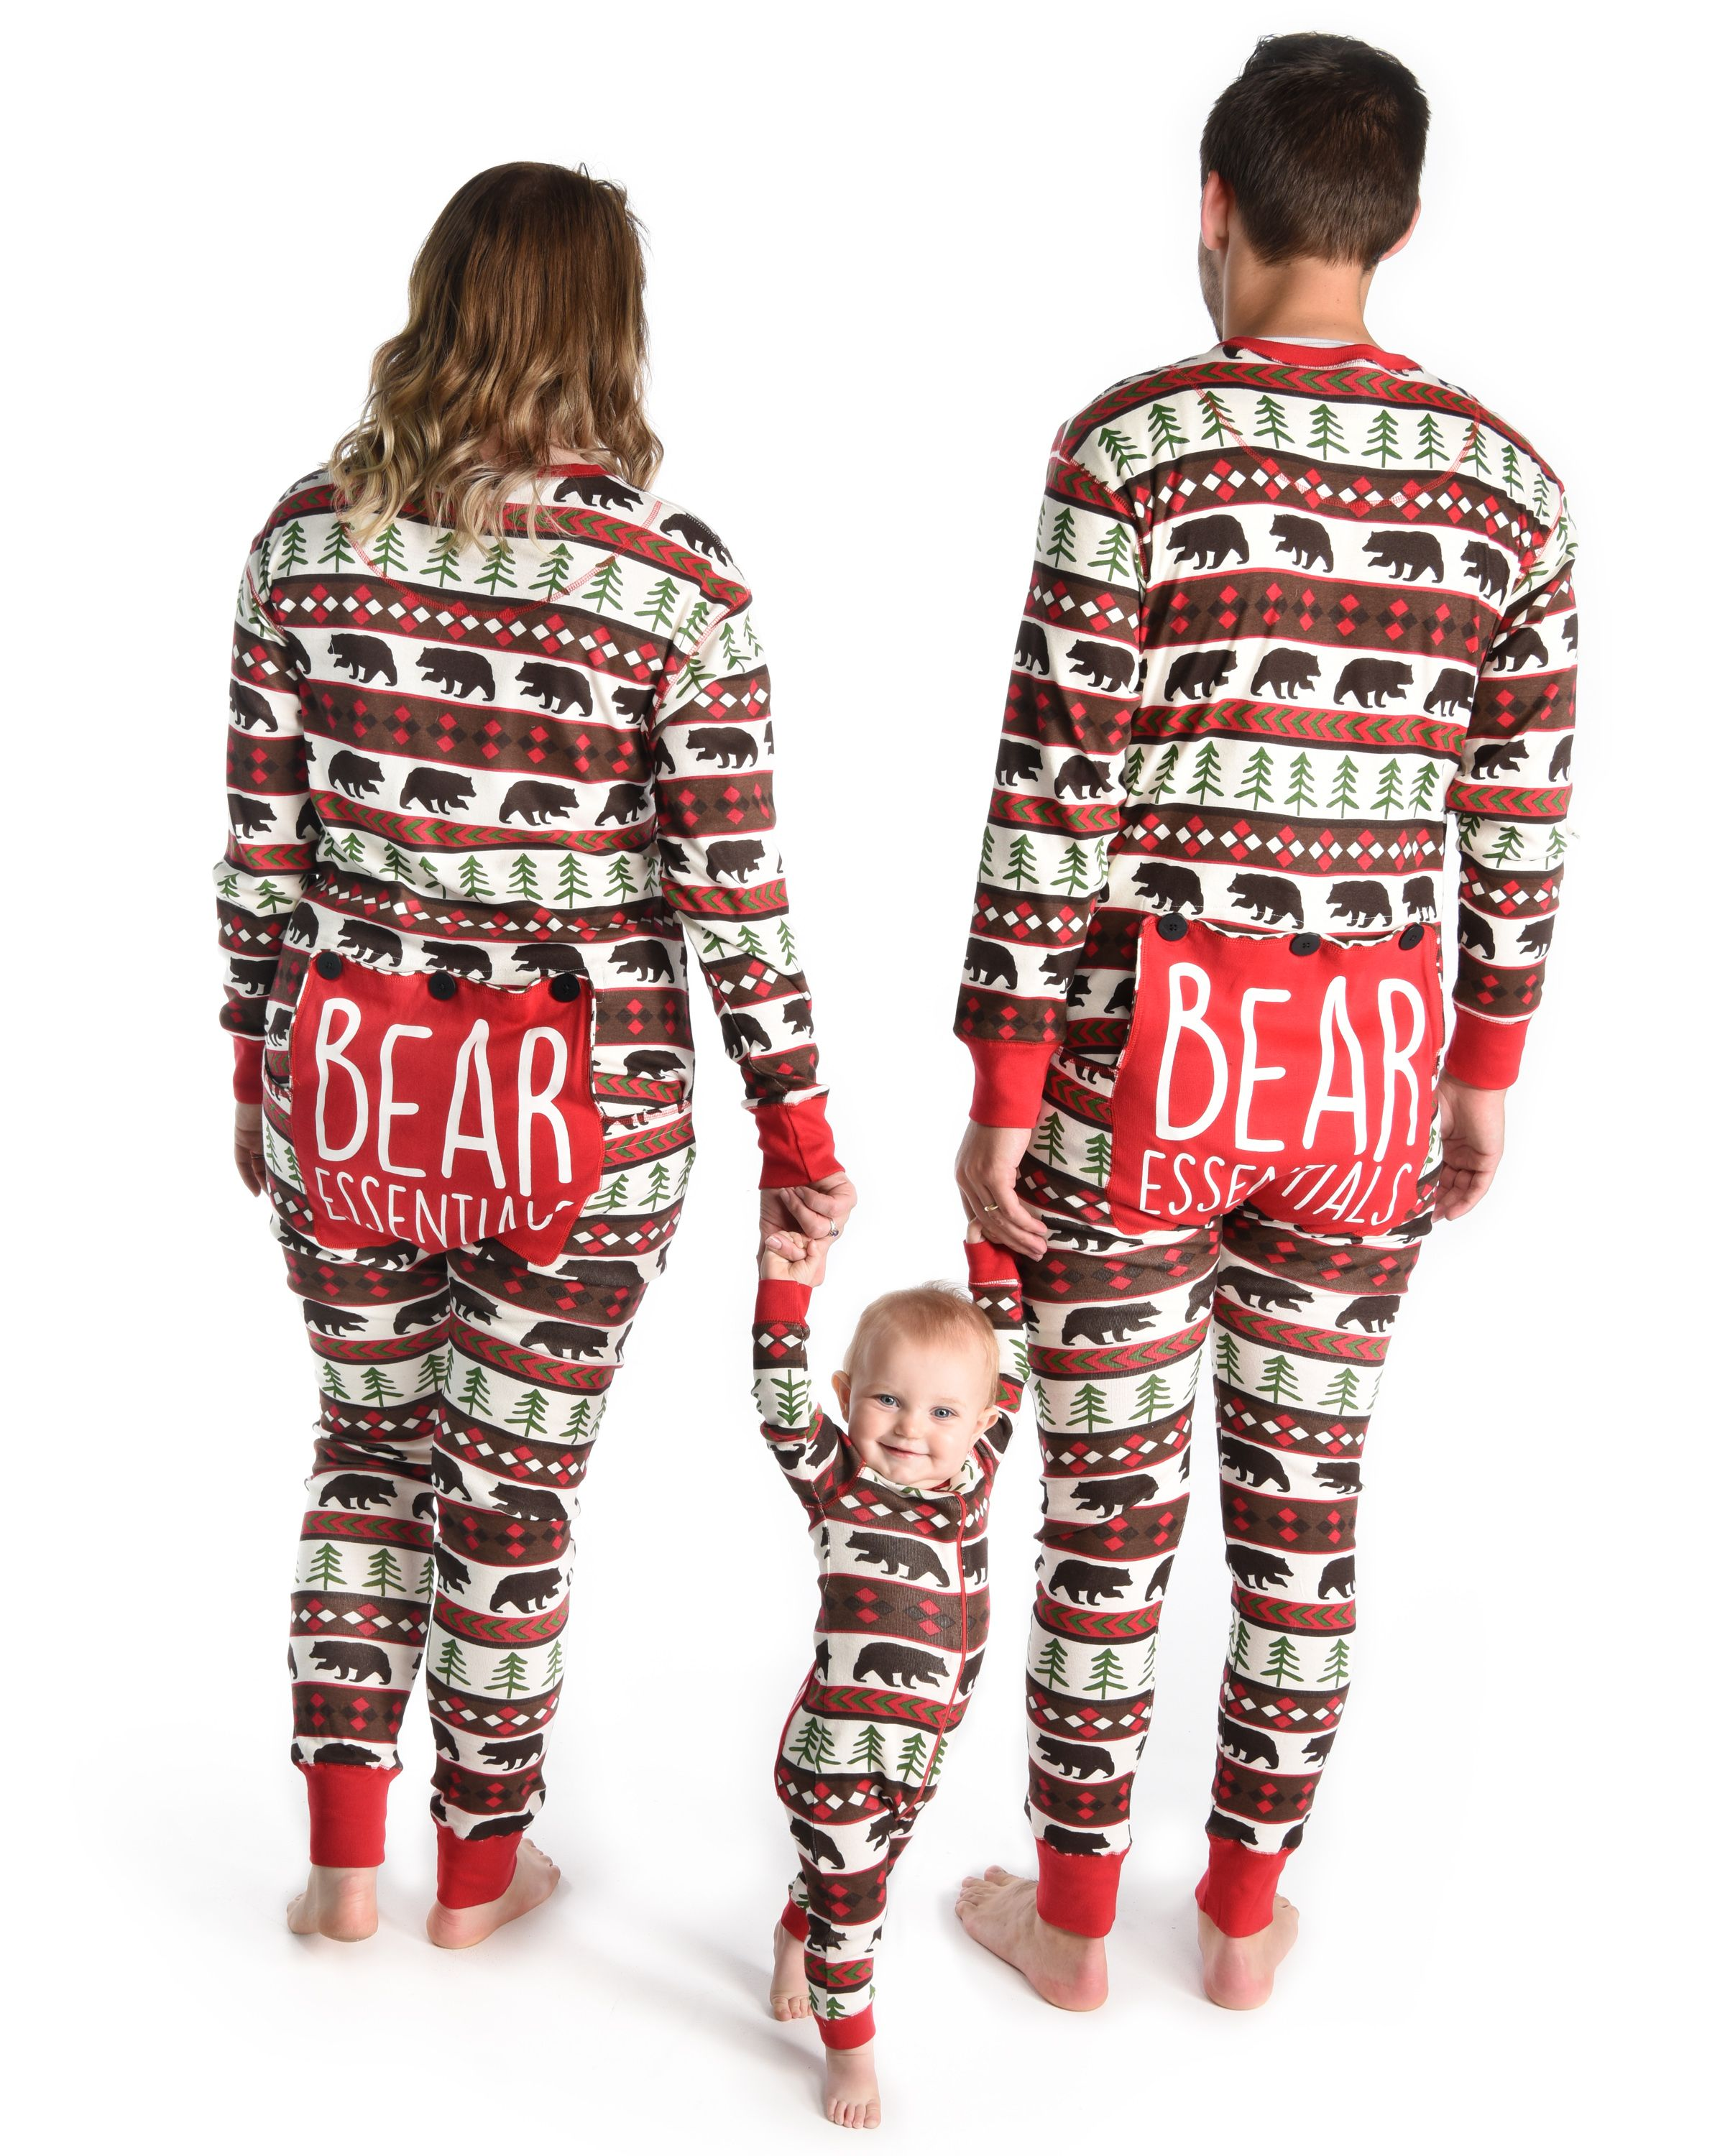 06b3d0382d Matching Pajamas!!! Fun pajama sets for the whole family! Get together with  coordinating pjs for every men